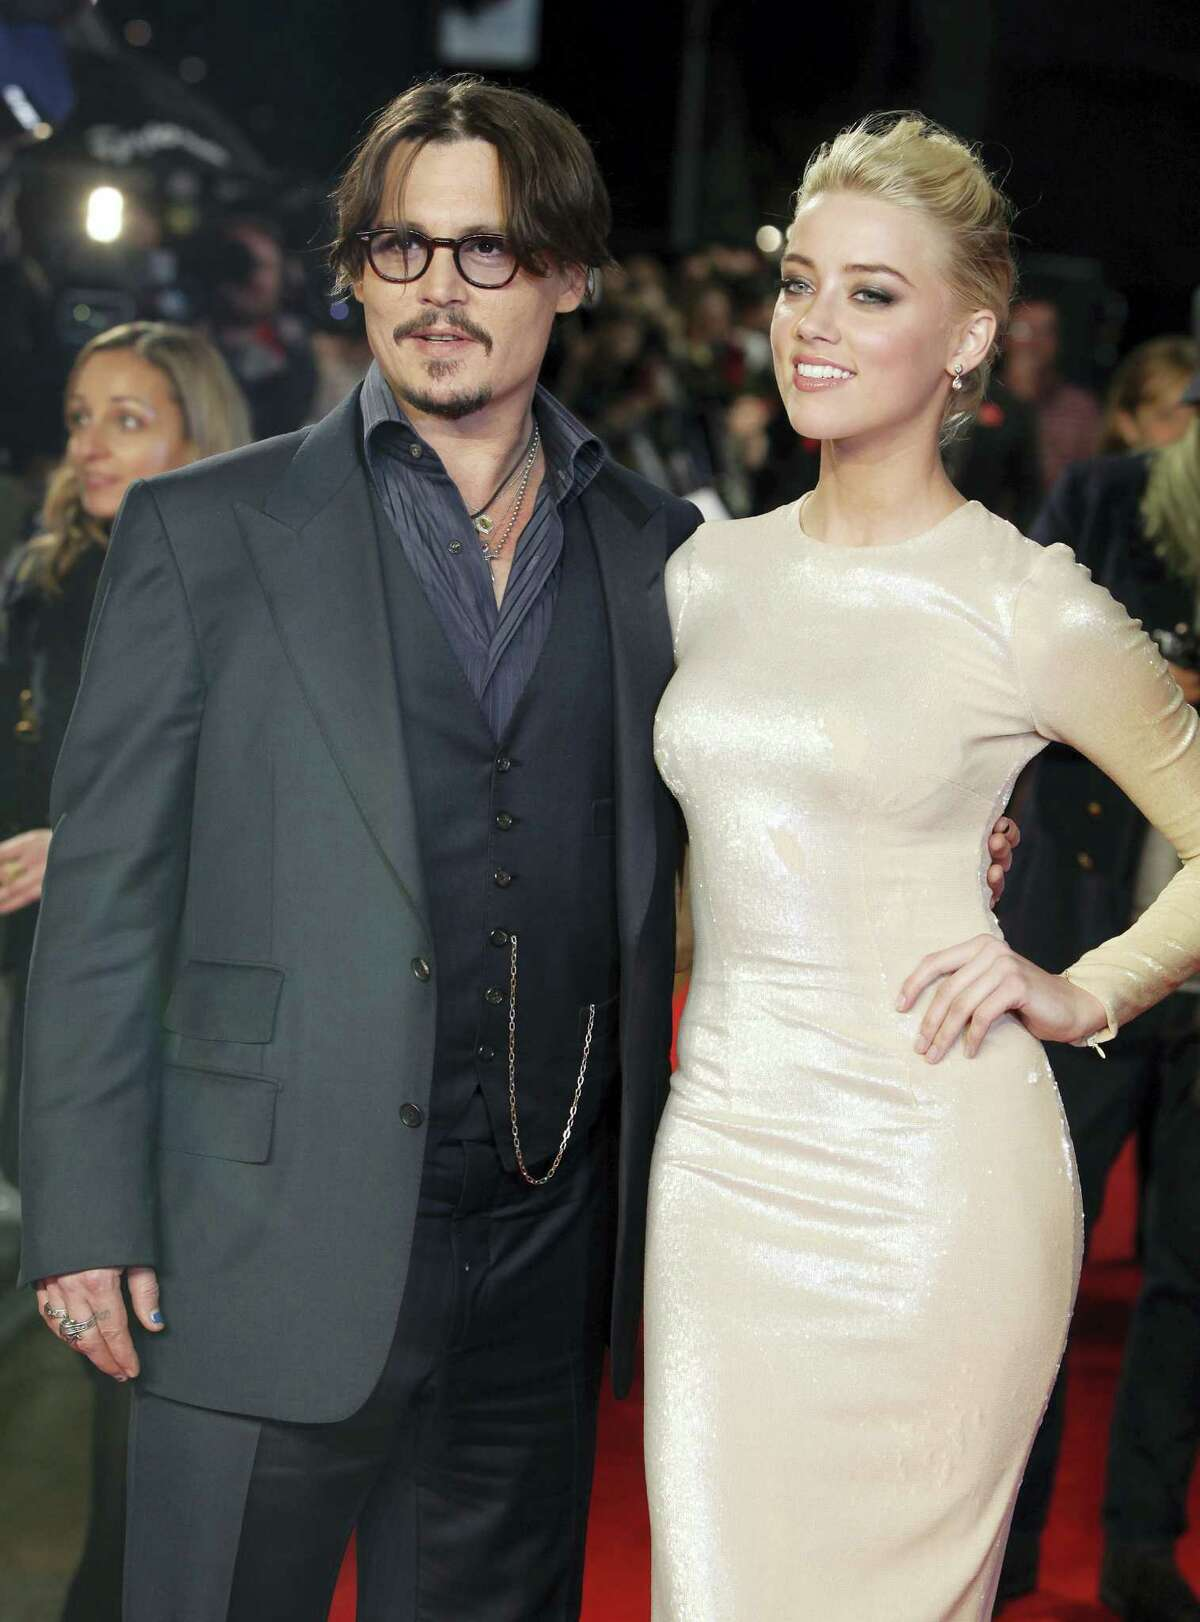 """In this Nov. 3, 2011, file photo, U.S. actors Johnny Depp, left, and Amber Heard arrive for the European premiere of their film, """"The Rum Diary,"""" in London. Heard is withdrawing allegations that Depp physically abused her and has settled her divorce case with the Oscar-nominated actor. Heard filed for divorce in May and days later obtained a temporary restraining order accusing the """"Pirates of the Caribbean"""" star of hitting her during a fight in their Los Angeles apartment in May. Depp denied he abused her, and police said they found no evidence of a crime."""